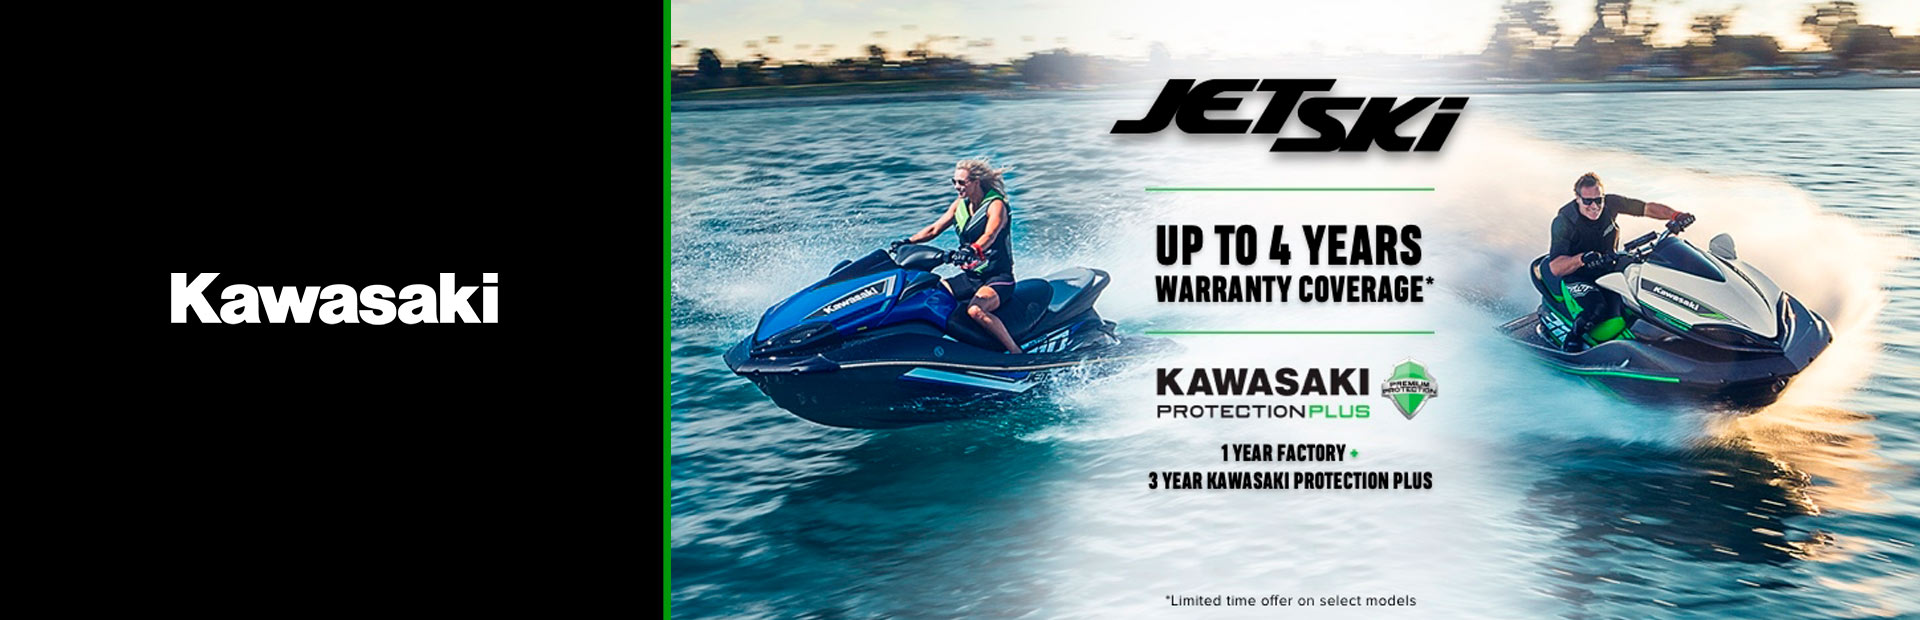 Kawasaki: KAWASAKI JET SKI PROTECTION PLUS